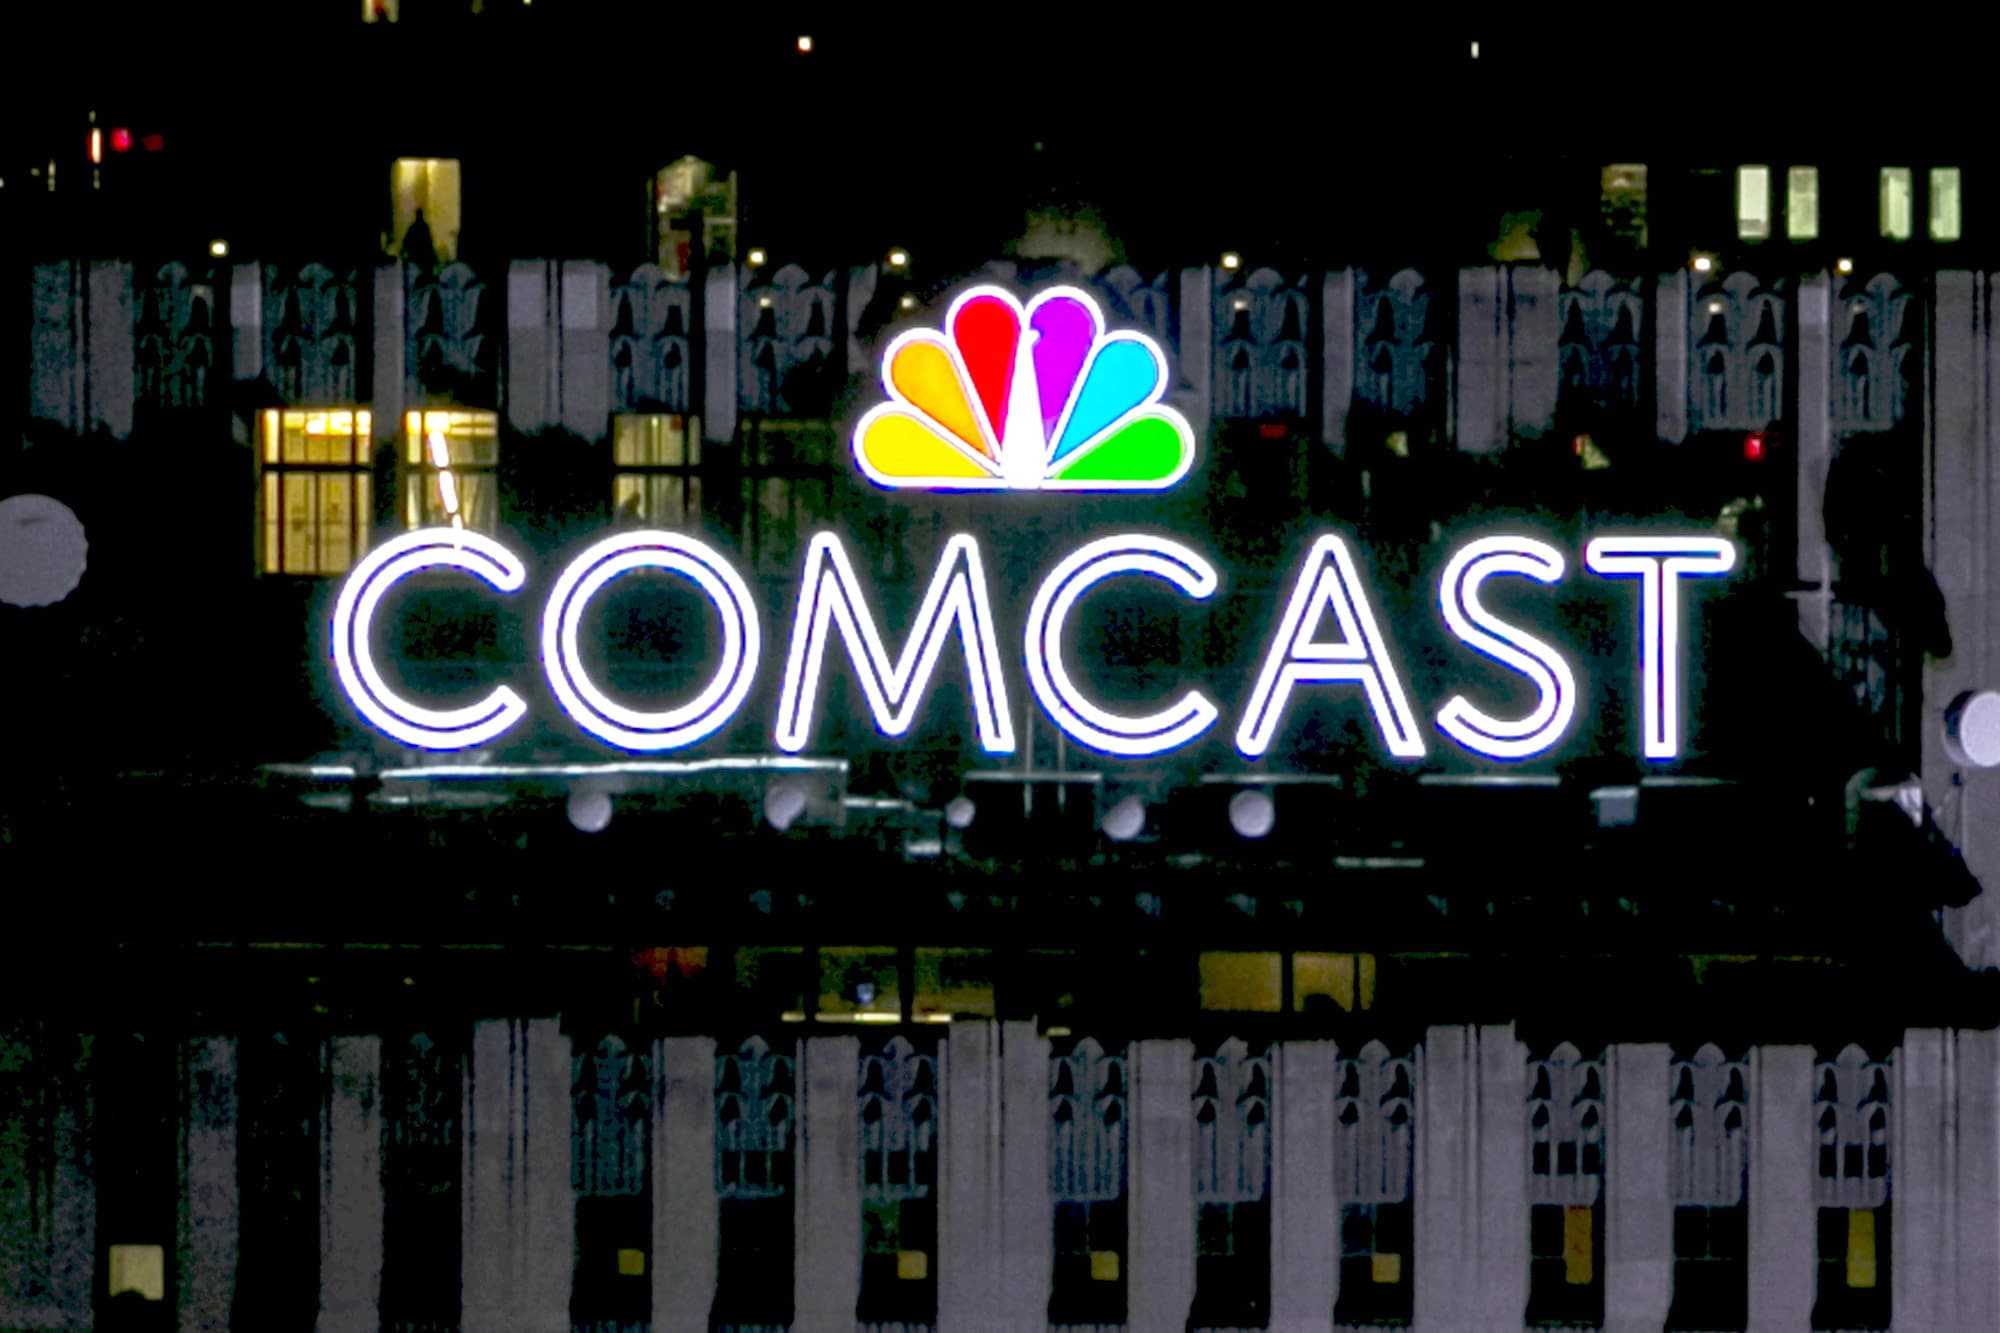 Comcast outbids Fox by $3 6 billion in a three-round auction process